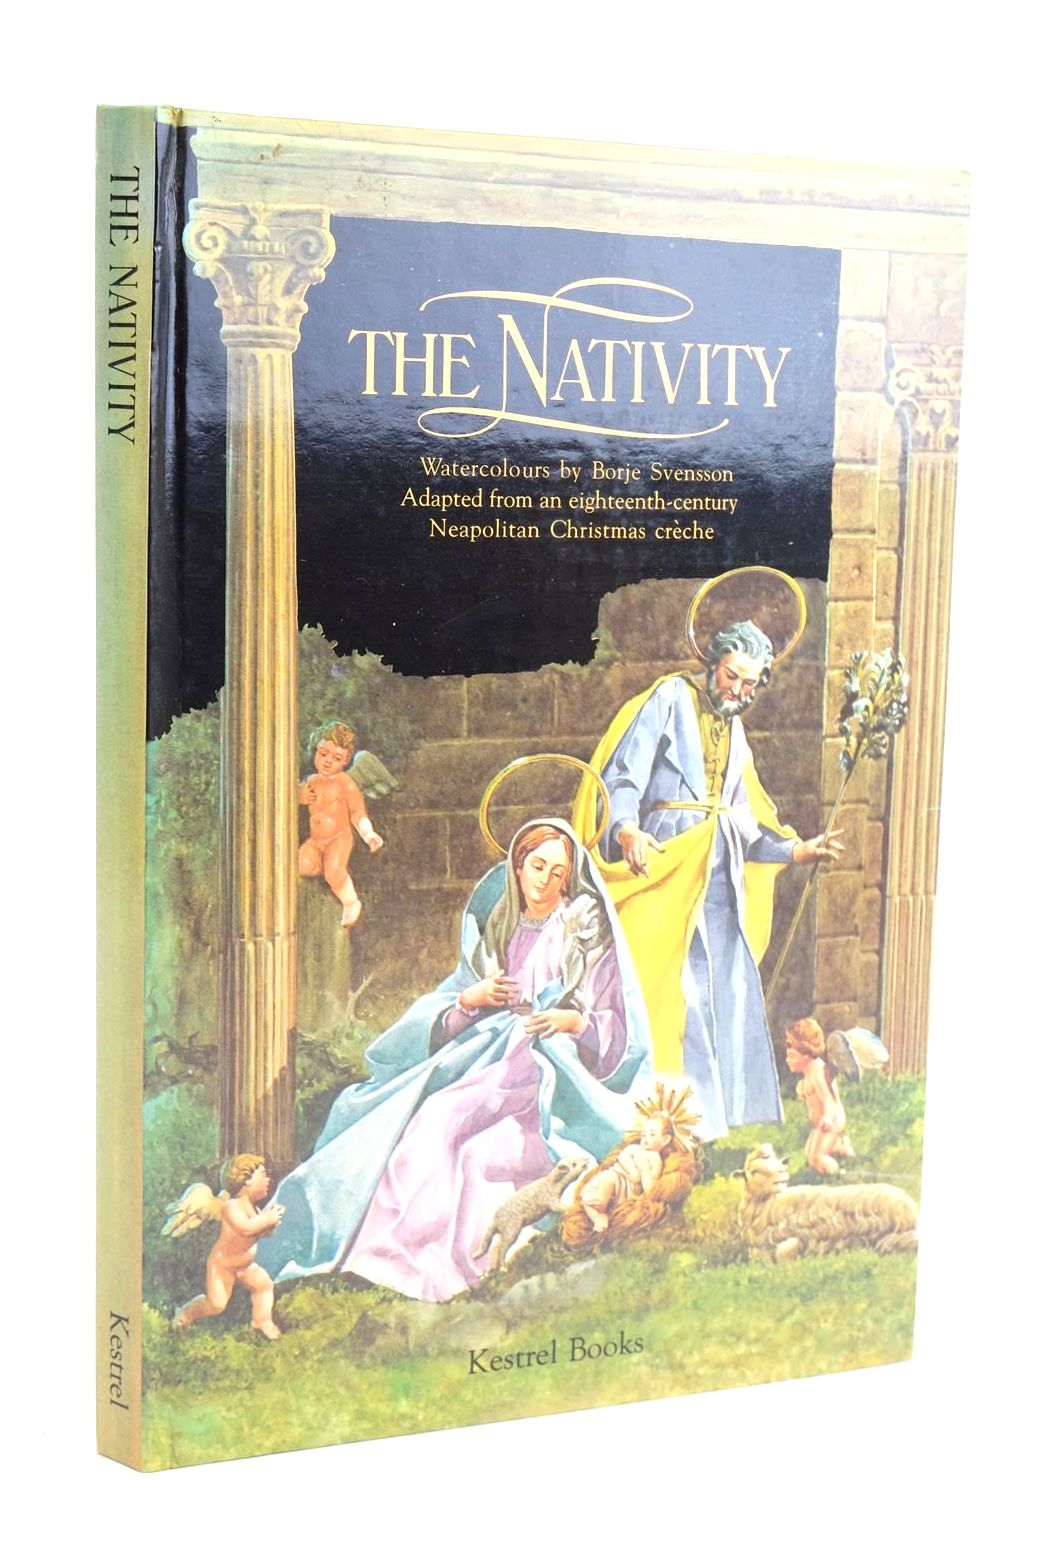 Photo of THE NATIVITY illustrated by Svensson, Borje published by Kestrel Books (STOCK CODE: 1319994)  for sale by Stella & Rose's Books